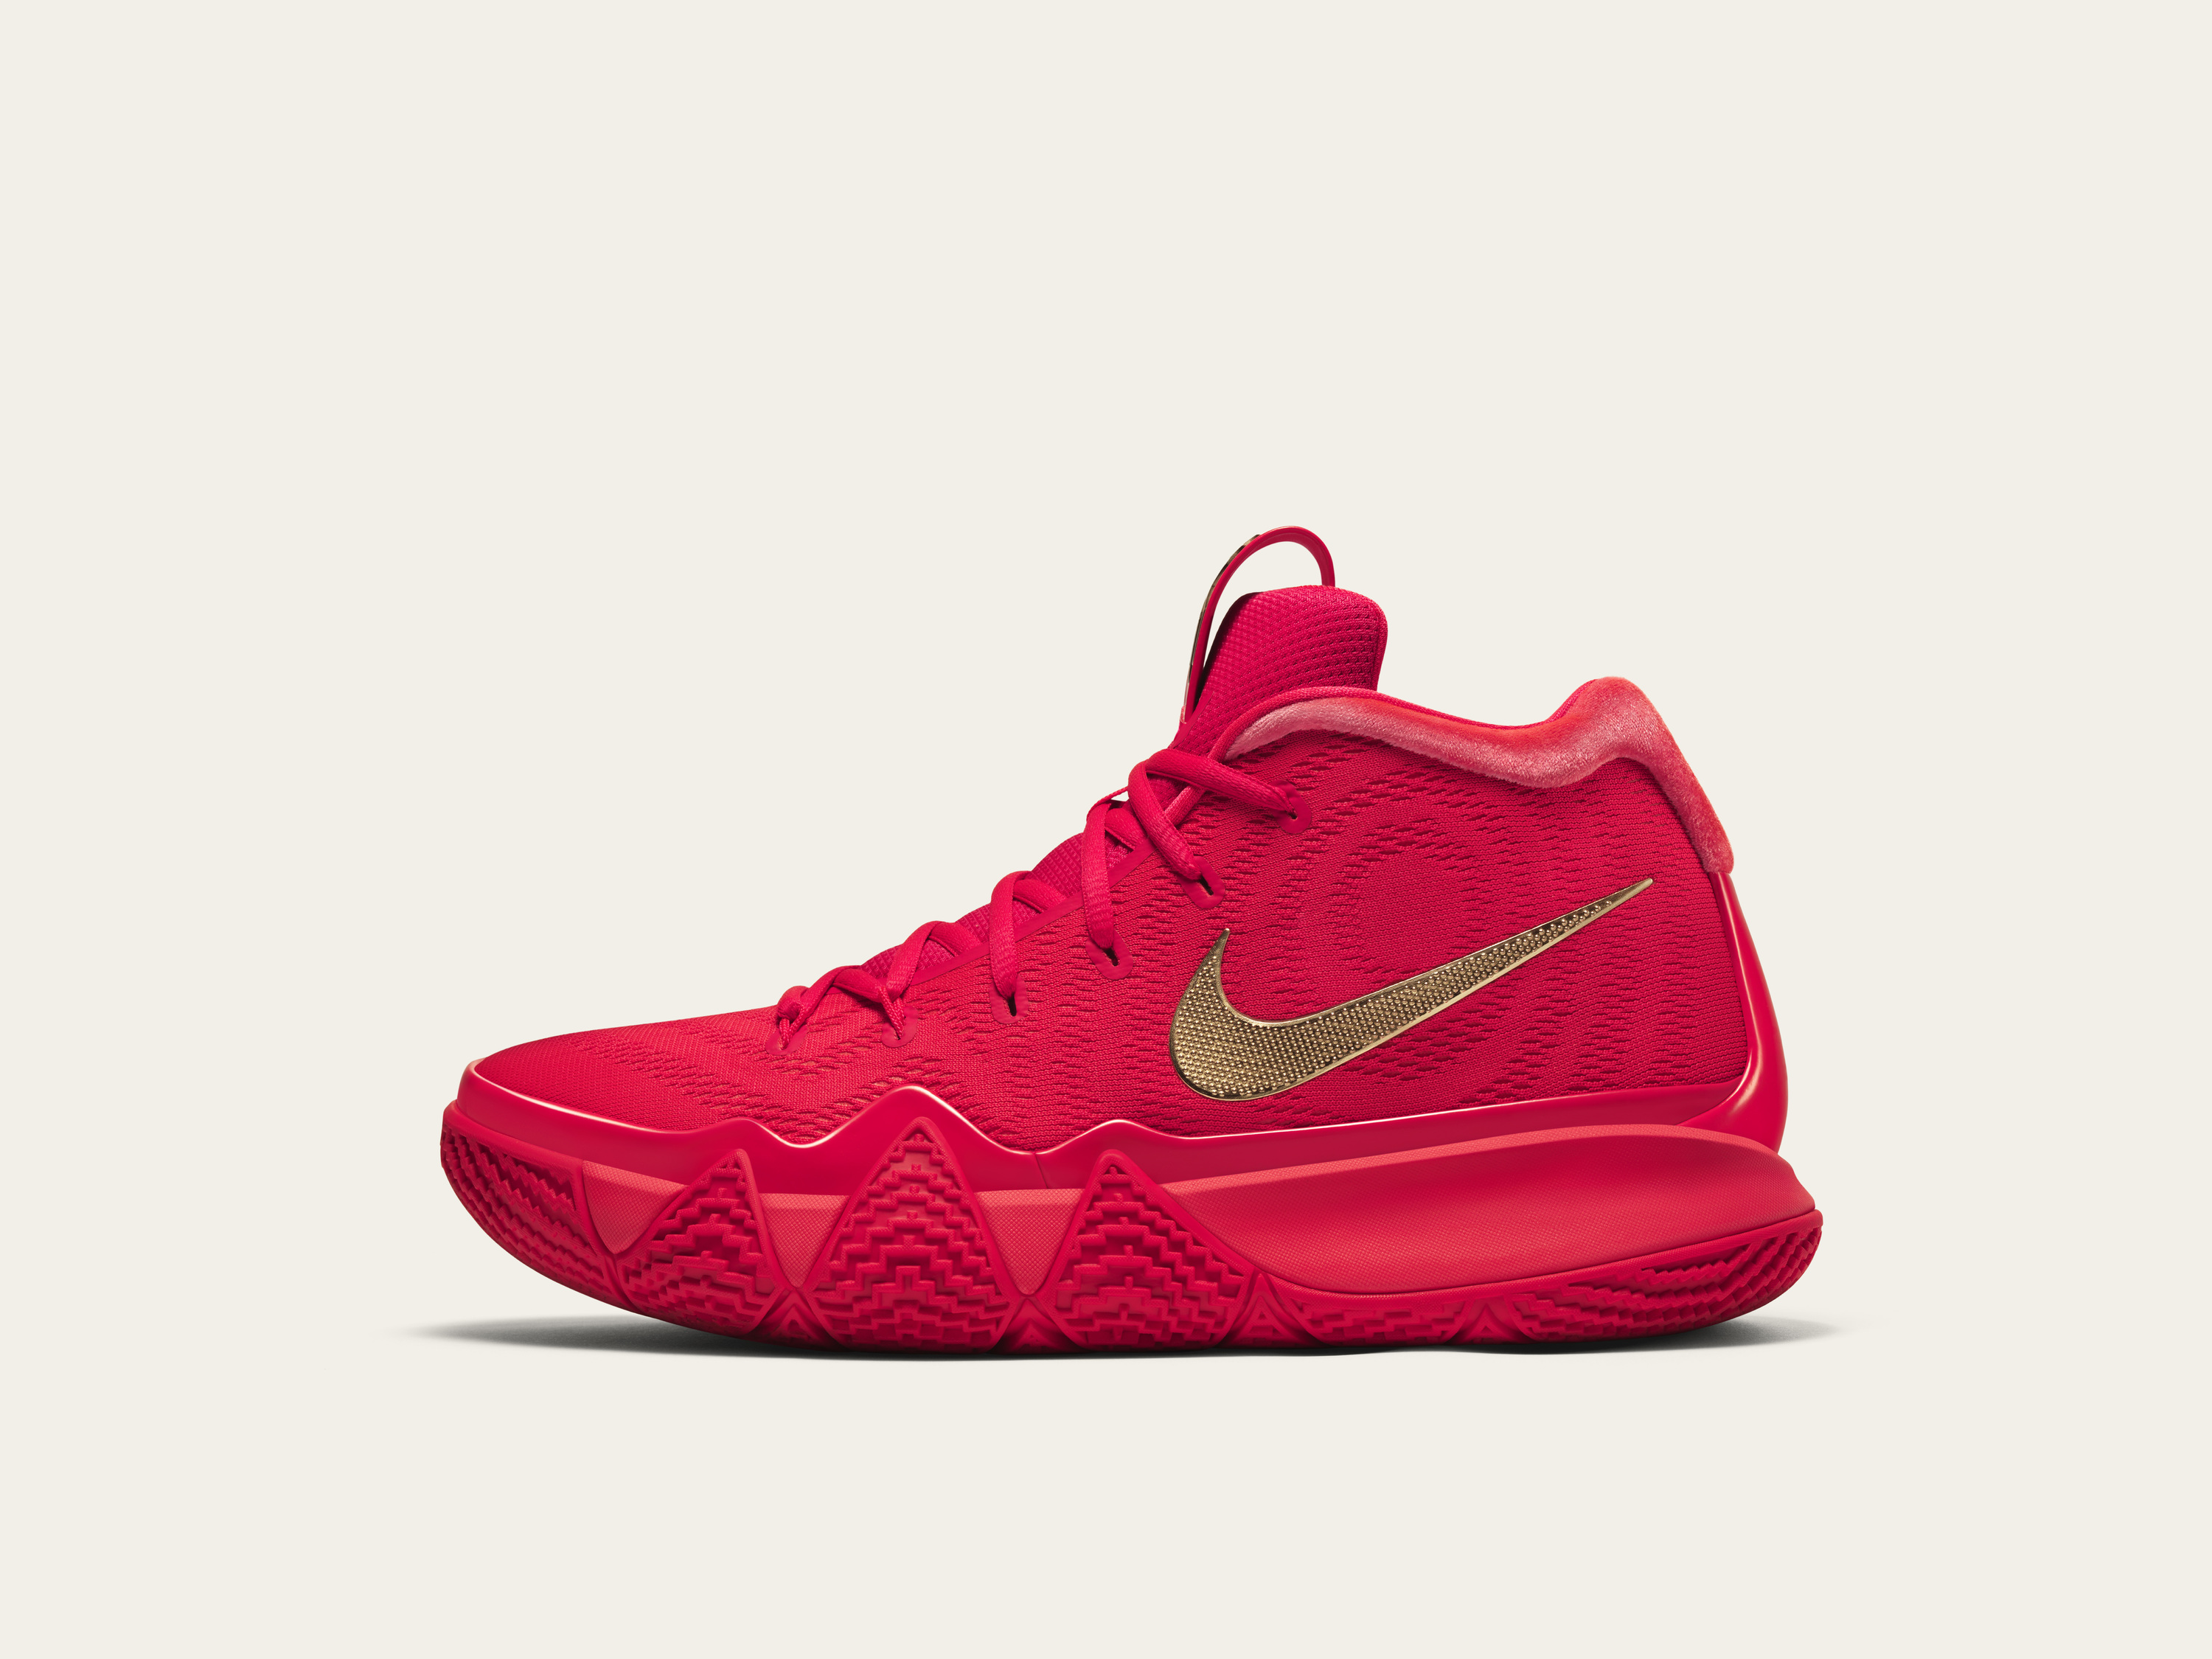 factory authentic 8a695 85b27 clearance kyrie 1 uncle drew for sale near me 5e526 2284f